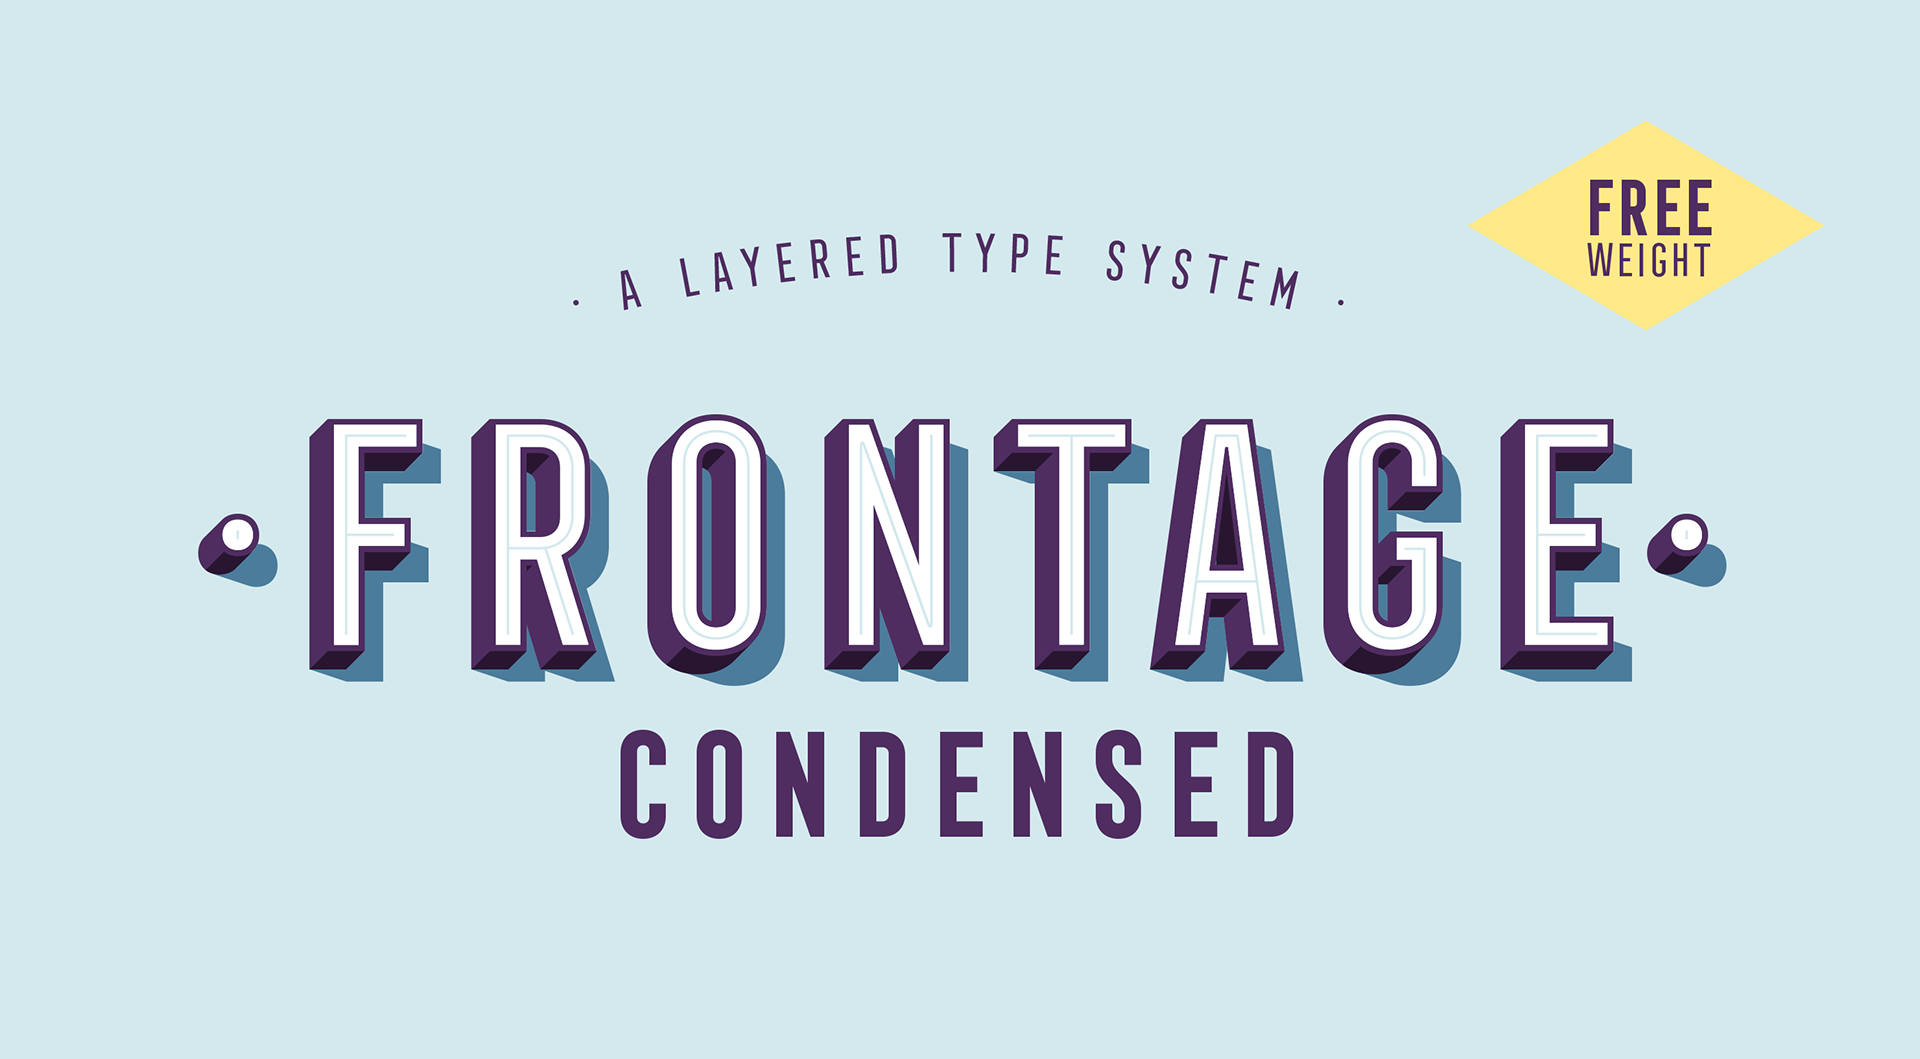 frontage condensed